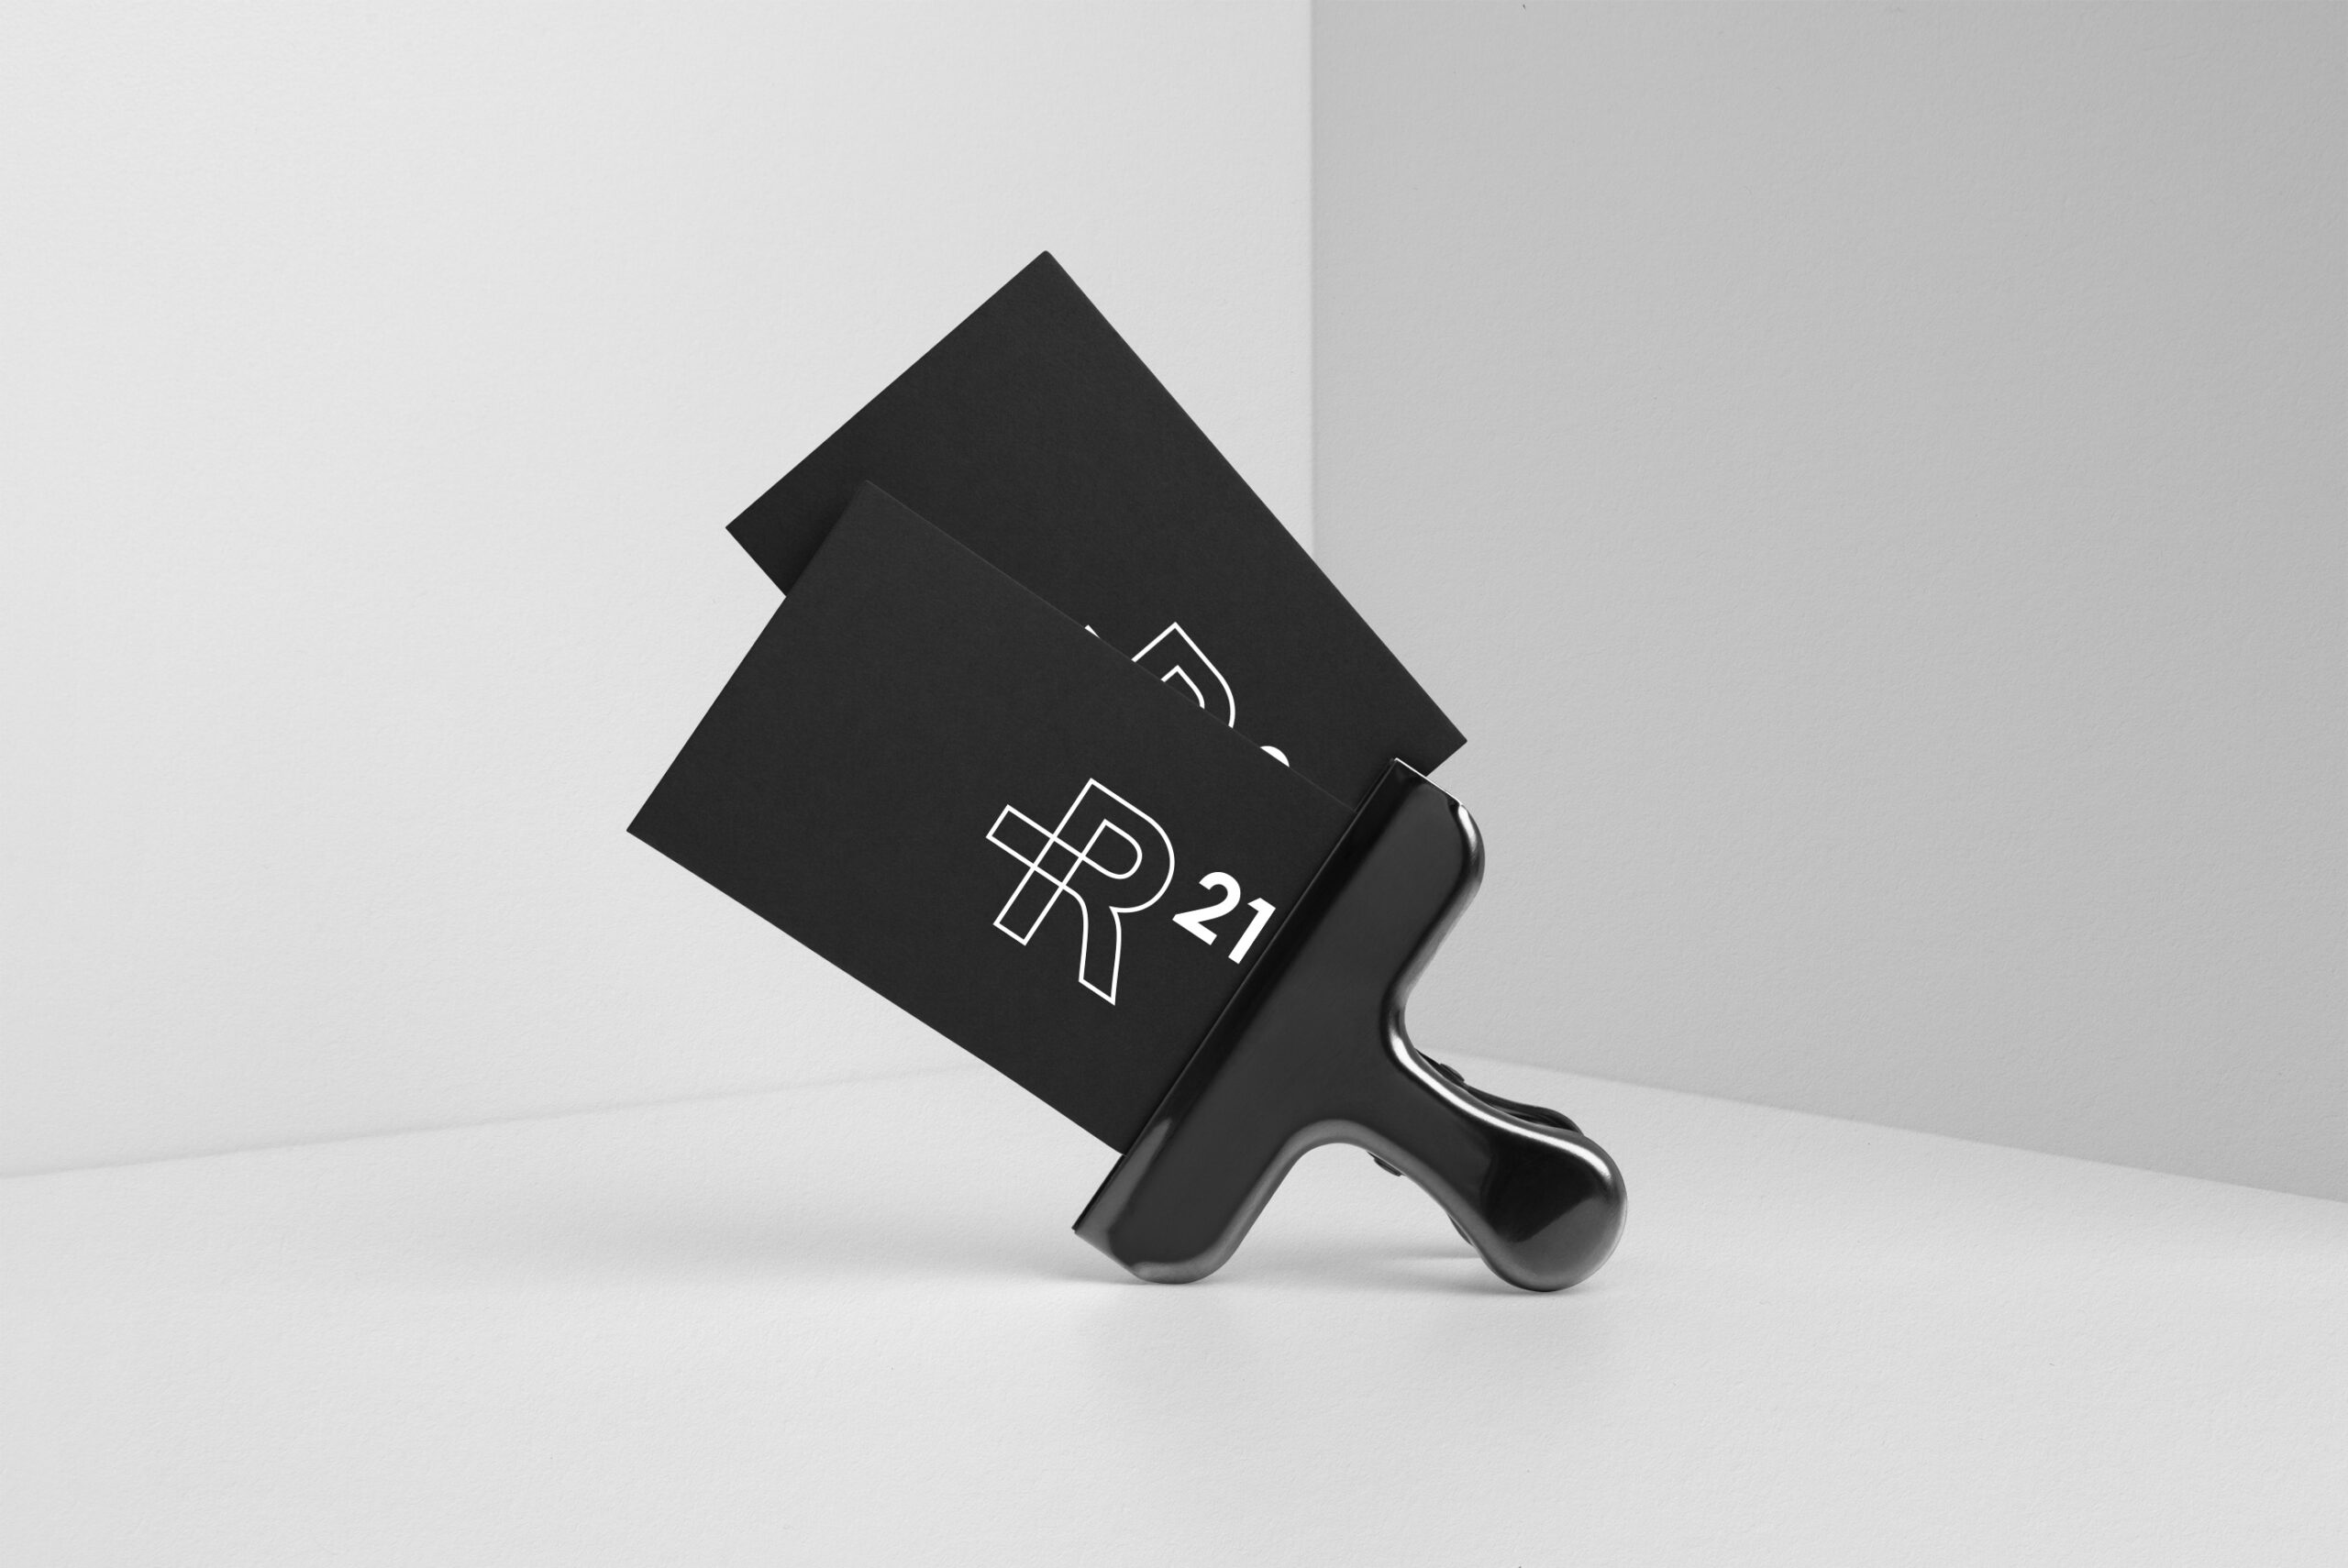 R21 brand identity design graphic drogheria studio business cards